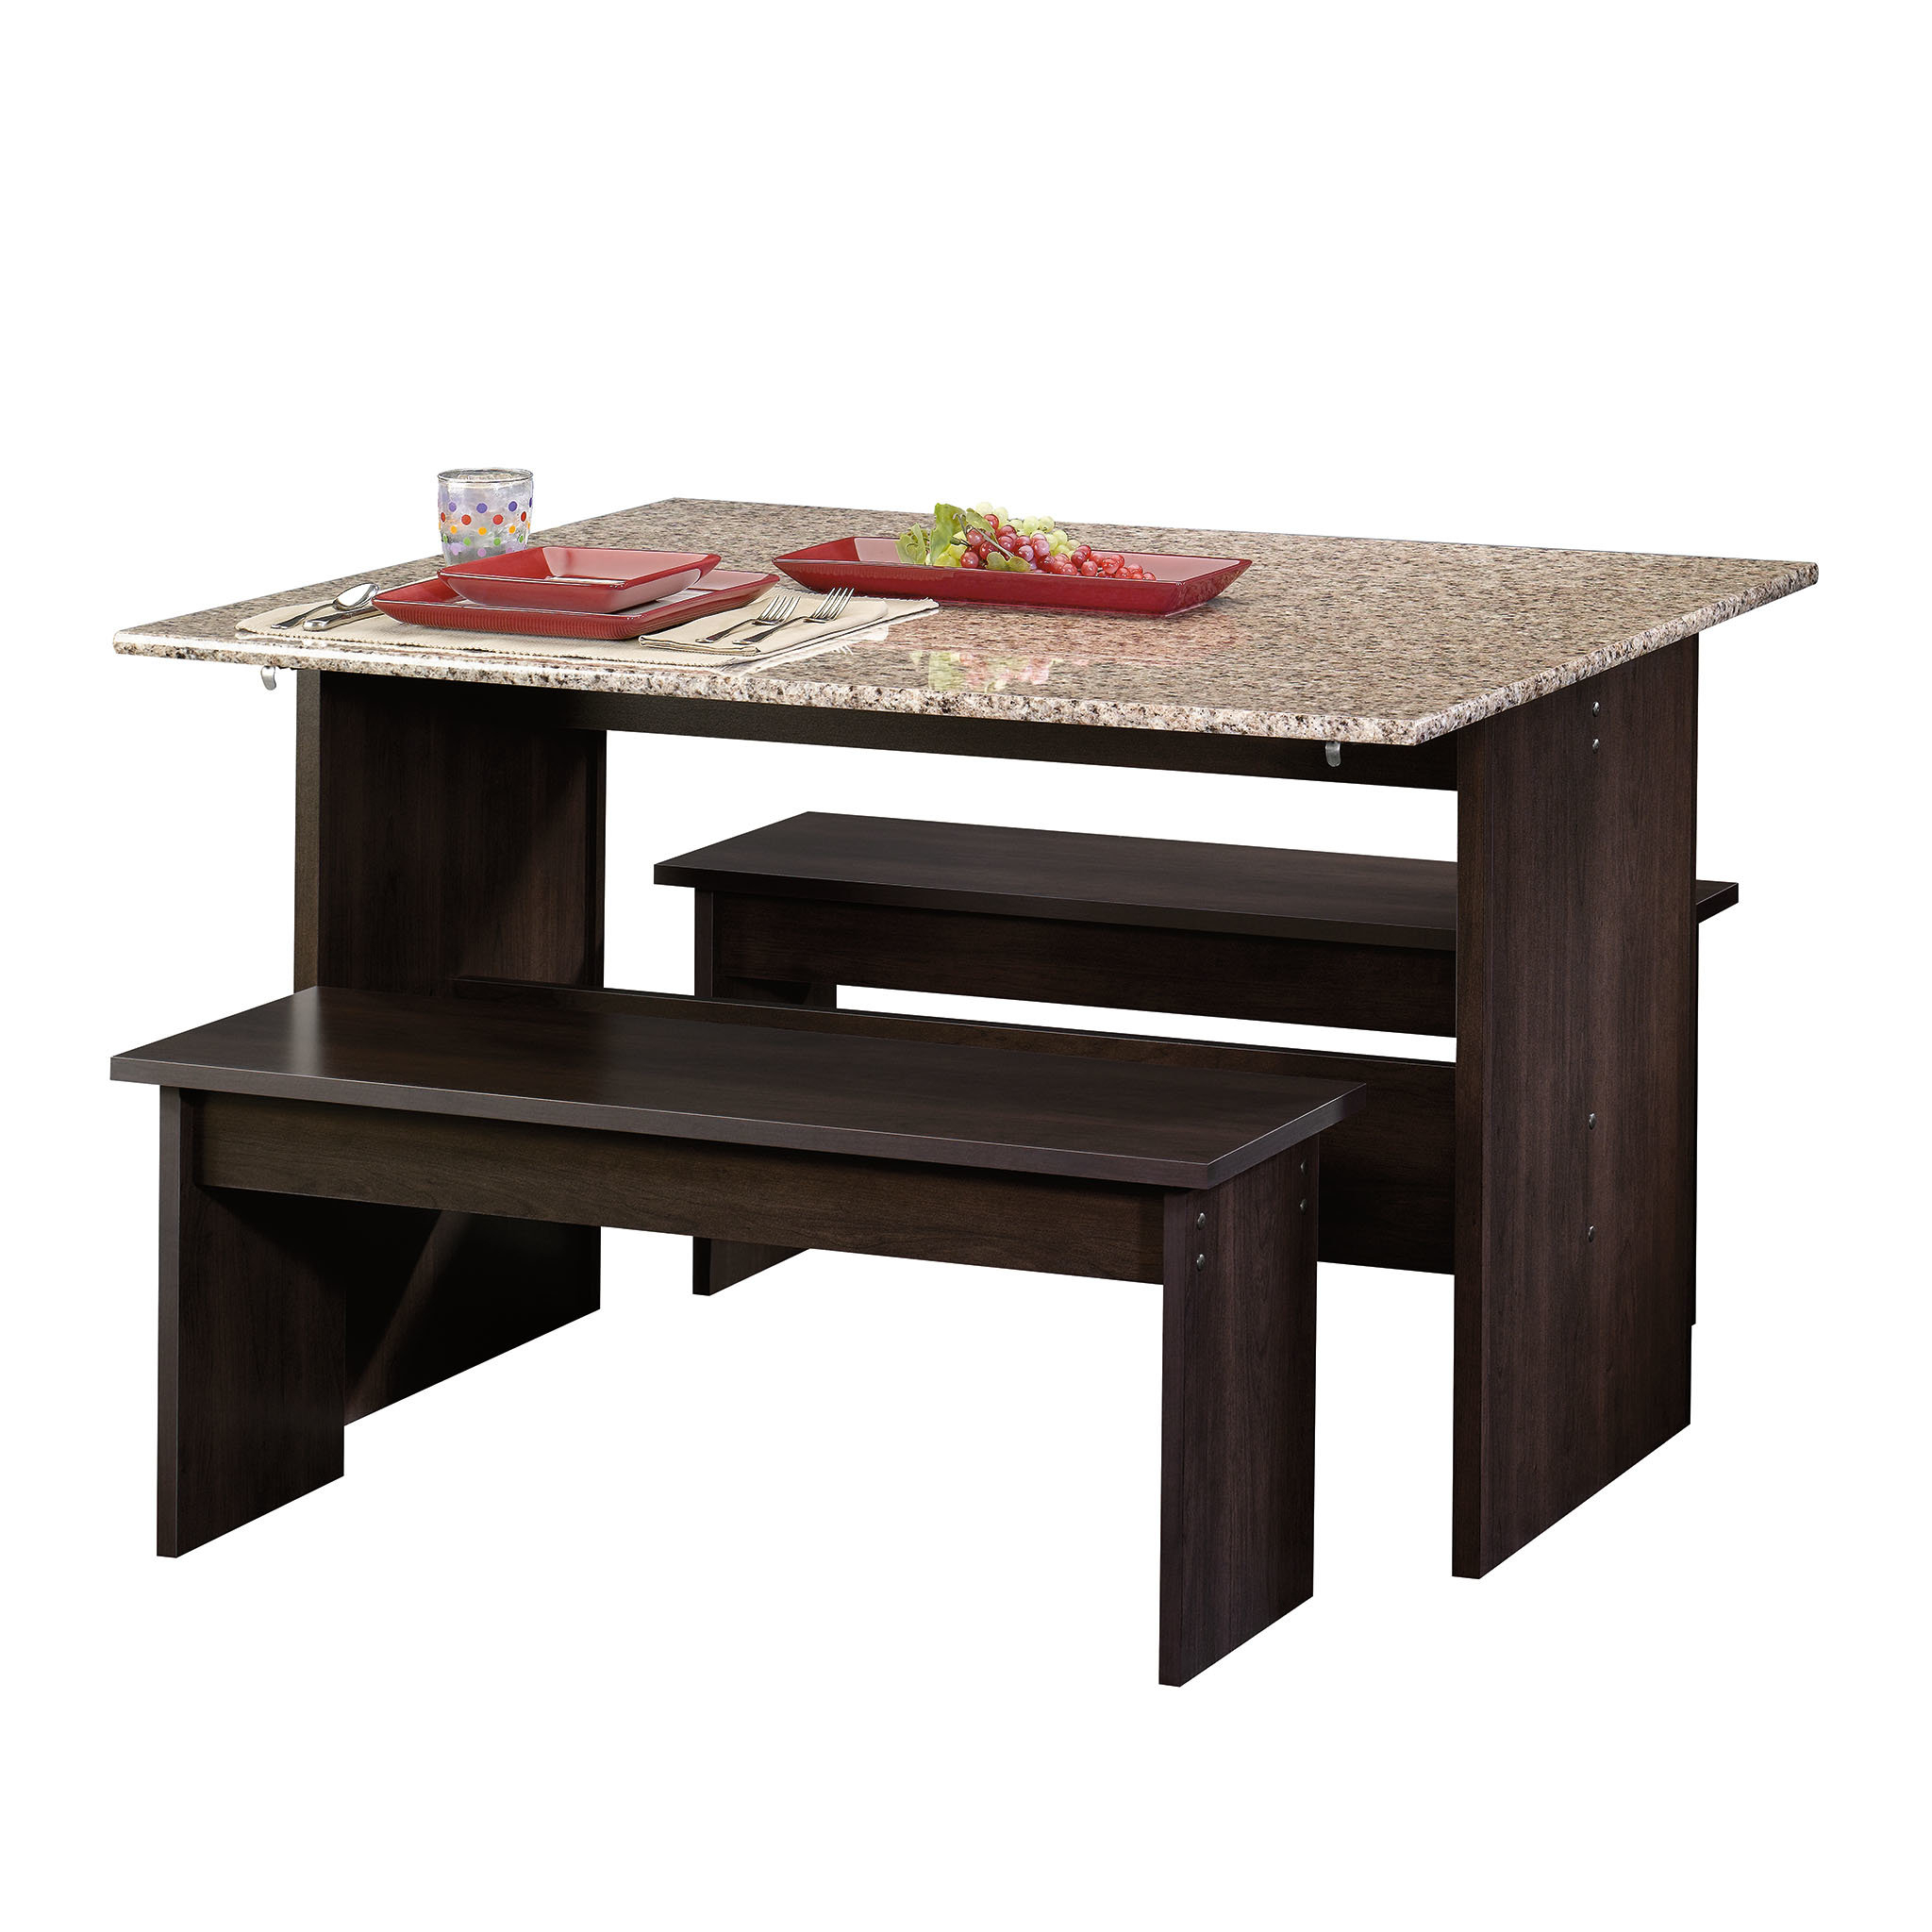 Widely Used Ryker 3 Piece Dining Set Intended For Ryker 3 Piece Dining Sets (View 20 of 20)